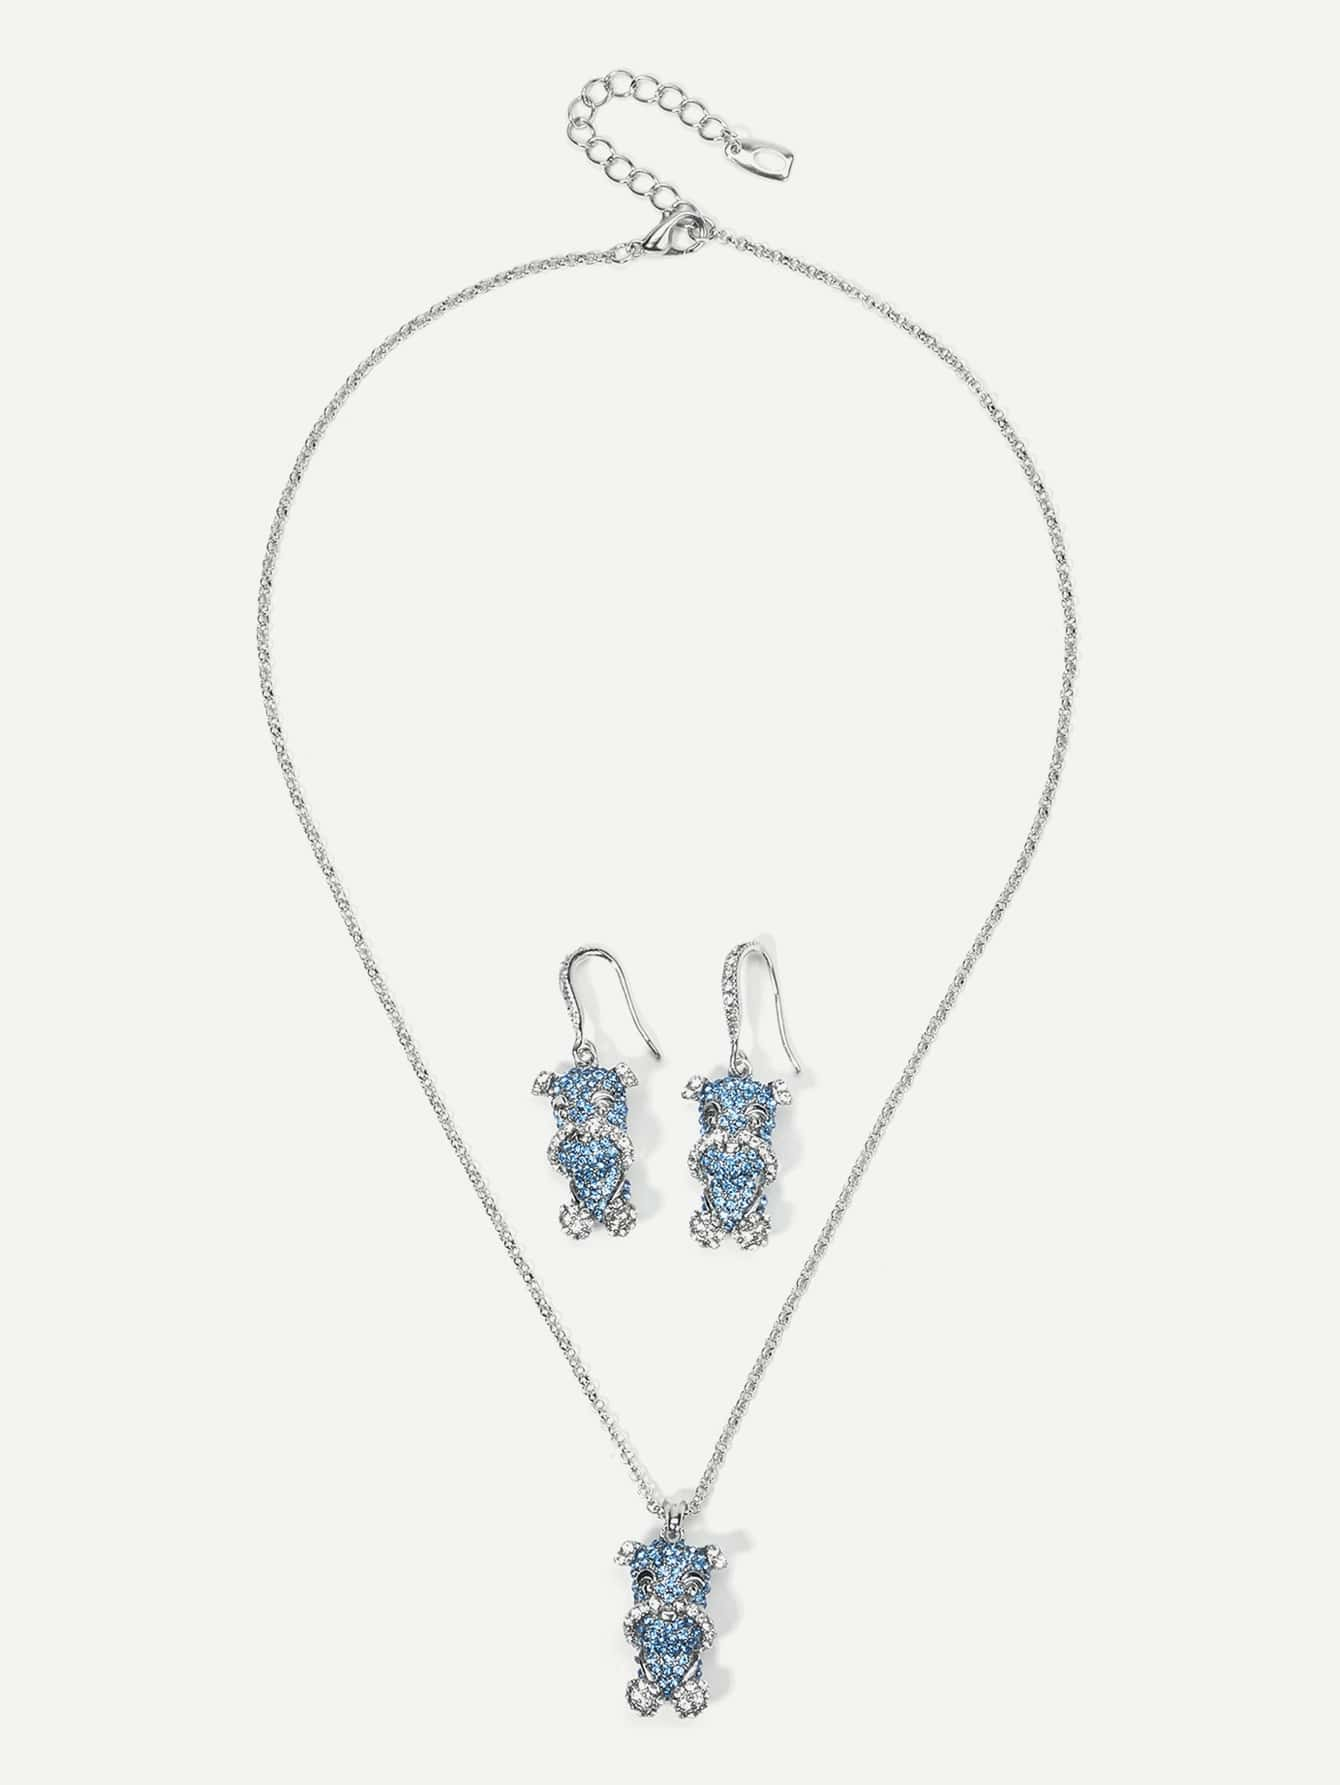 Animal Pendant Chain Necklace & Drop Earrings Set round drop chain necklace